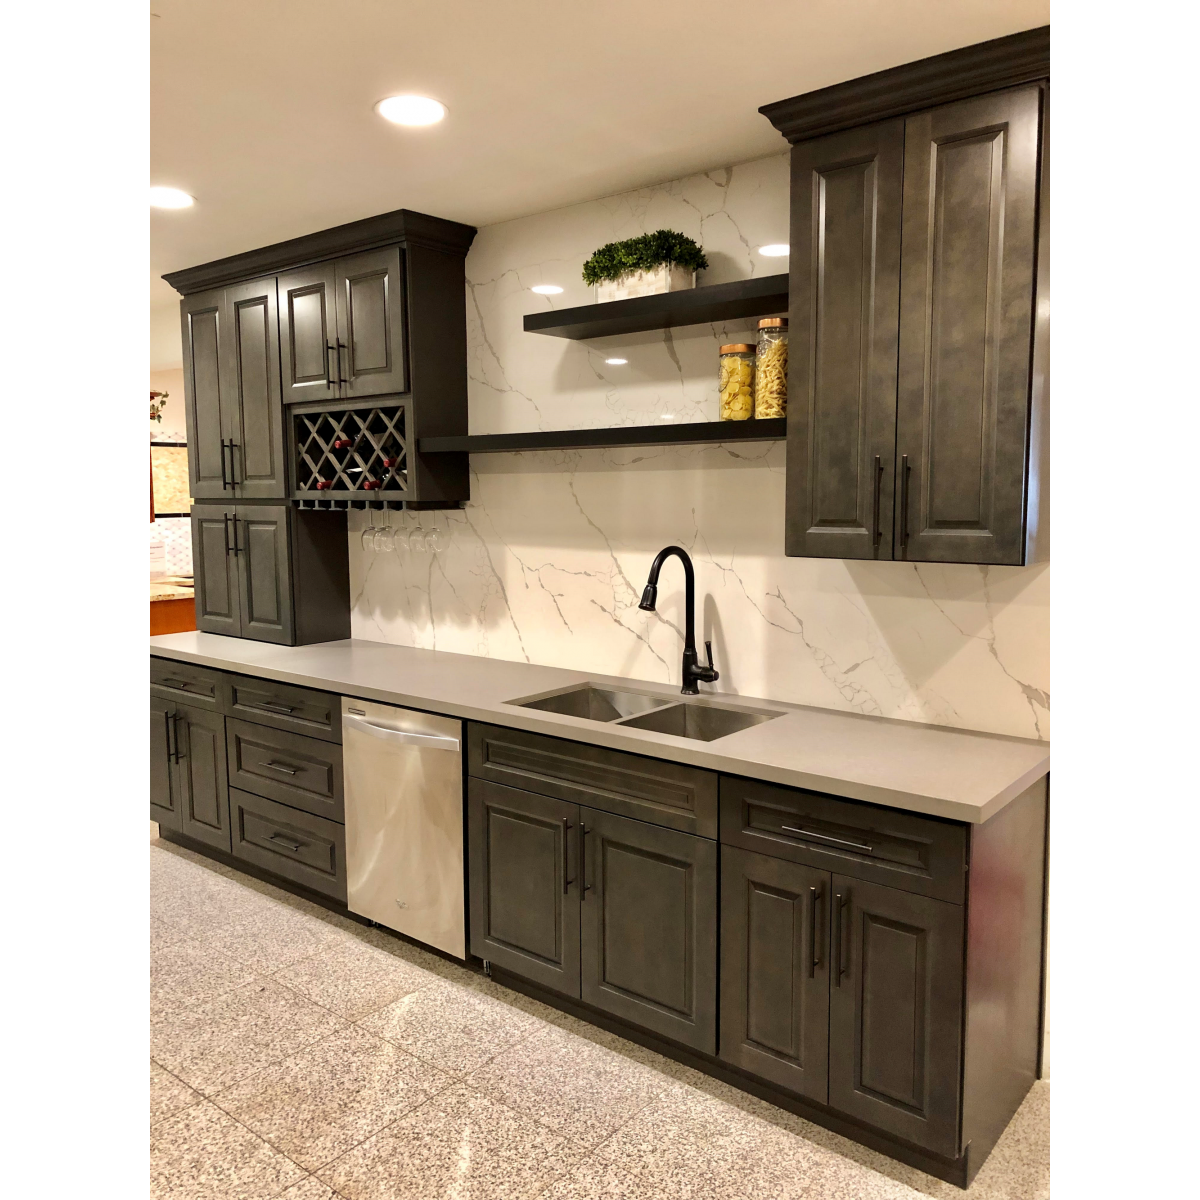 G Driftwood Gray - Kitchen Cabinet - Cabinet - Products